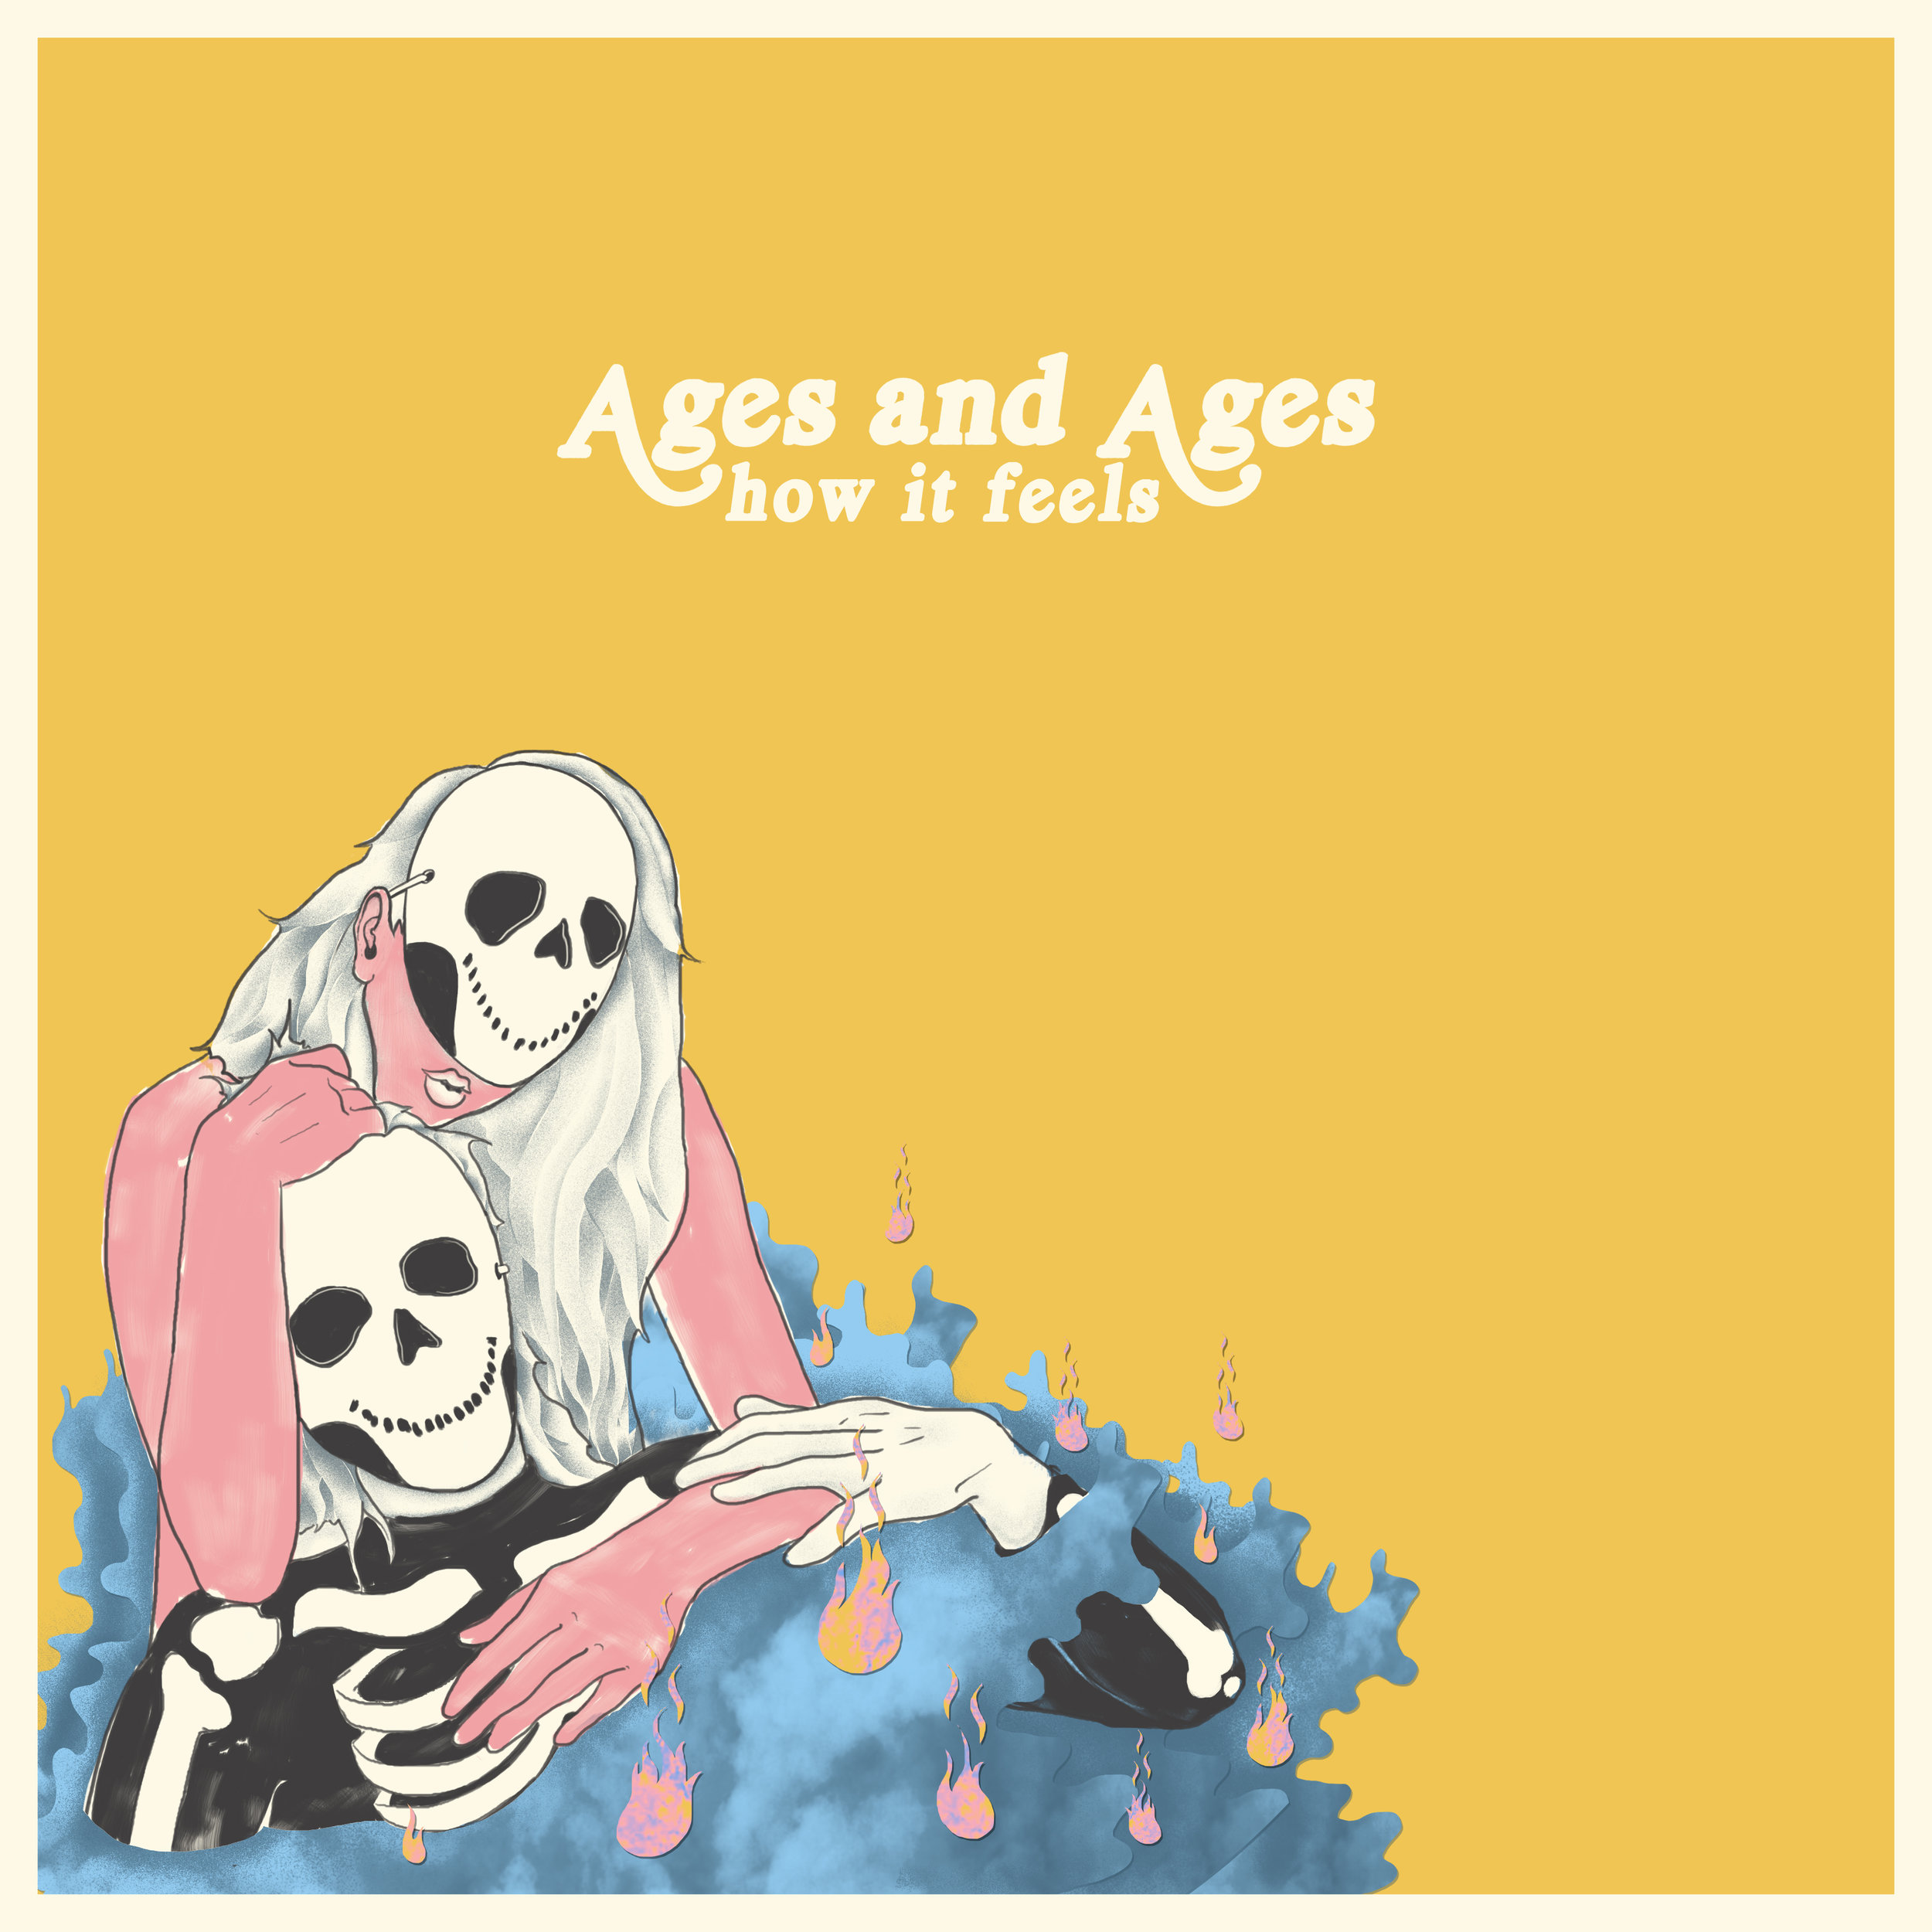 Ages_and_ages_final_opt_7.jpg